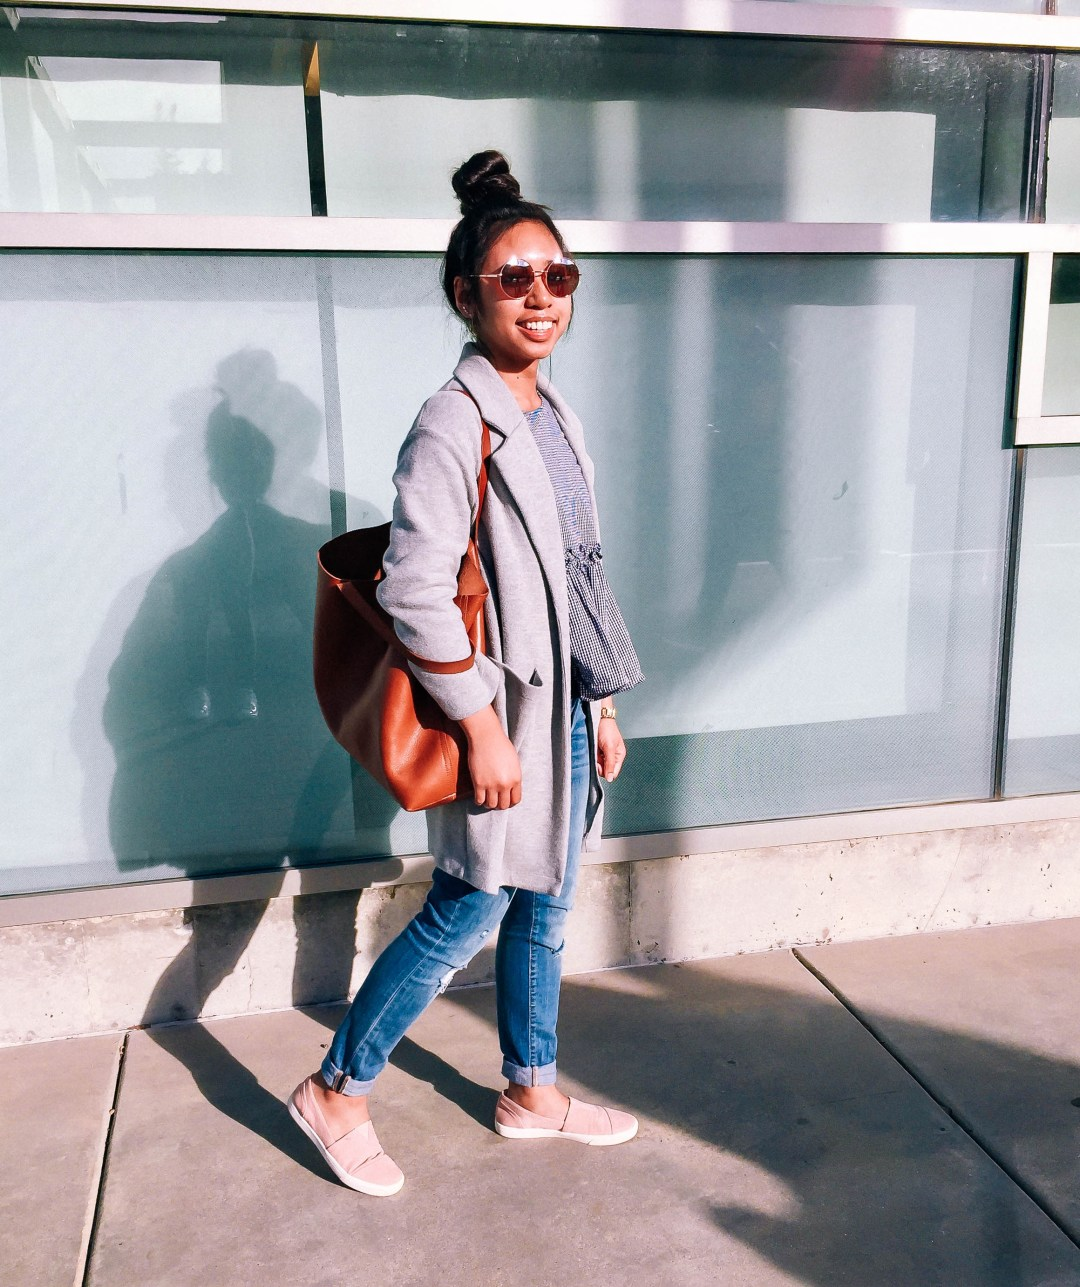 FullSizeRender 19 - What I Wore This Week in College | Spring Outfits for School